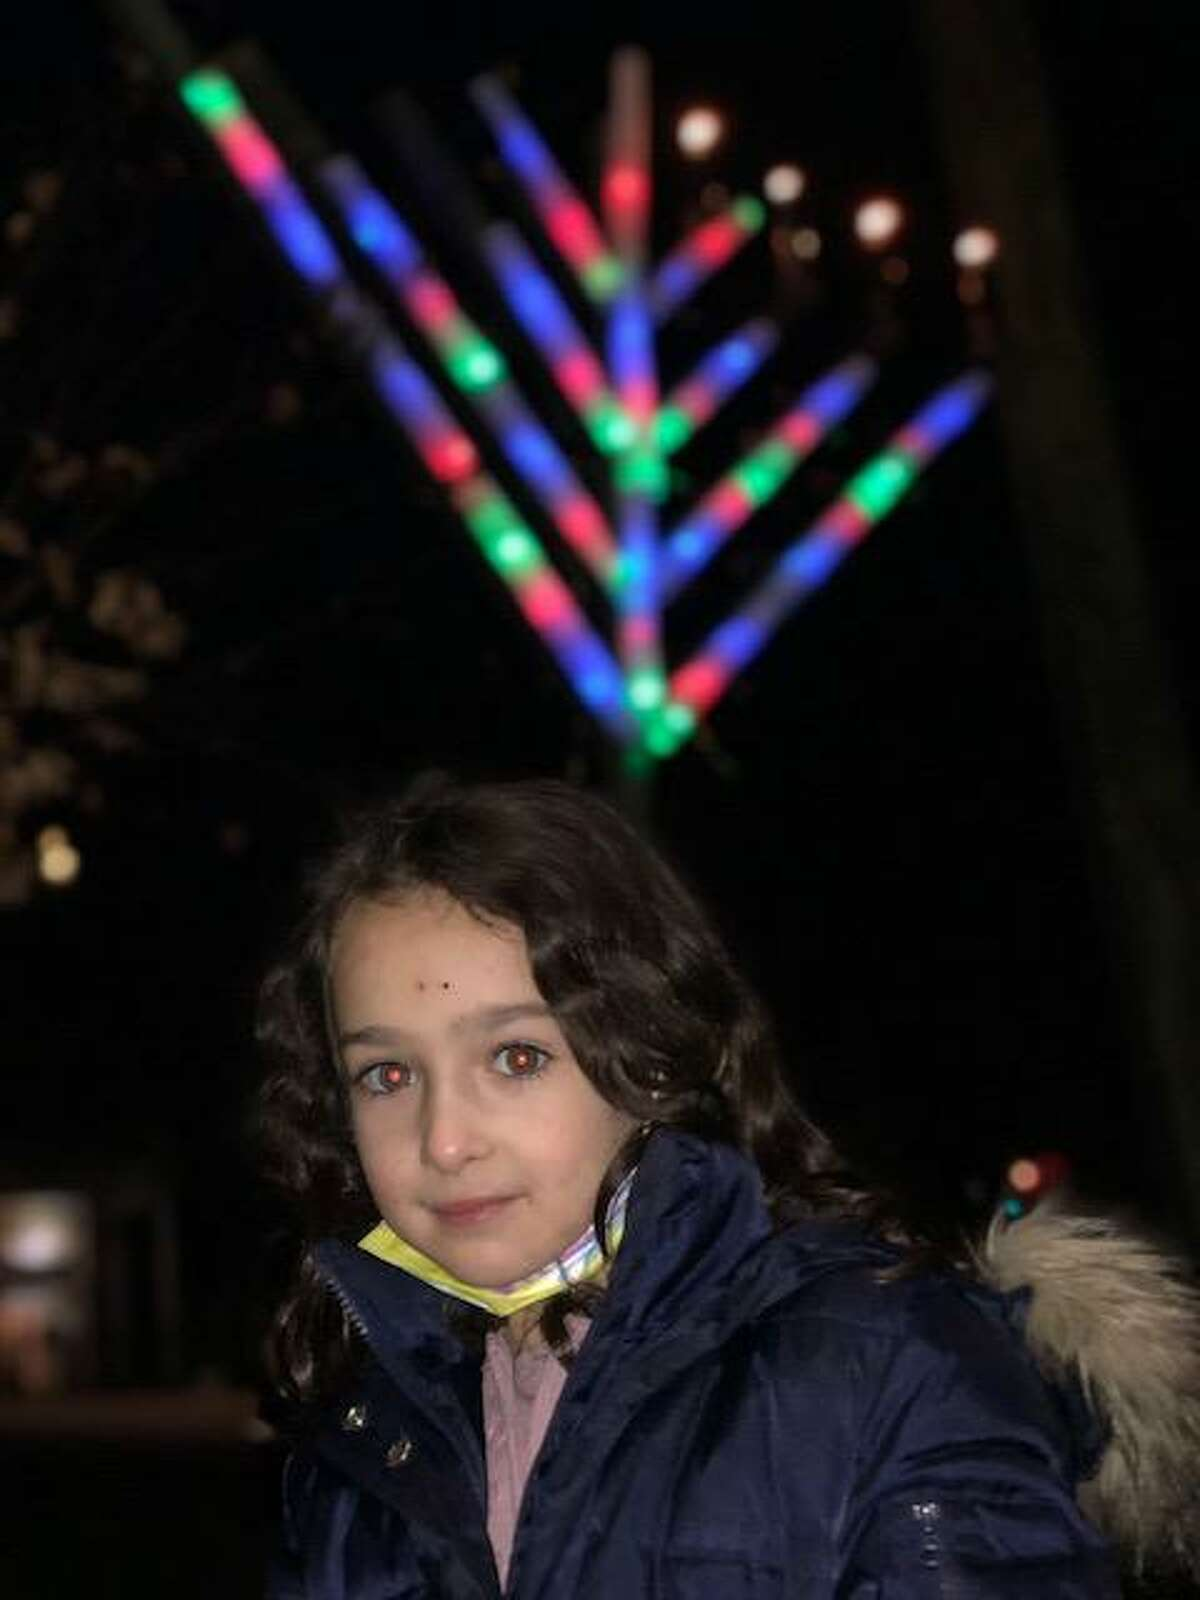 Chaya Deitsch at the menorah lighting presided over by her father, Rabbi Shalom Deitsch of Chabad Jewish Center of Ridgefield. The menorah, visible behind her, had four candles lit on Sunday, the fourth day of Chanukah.